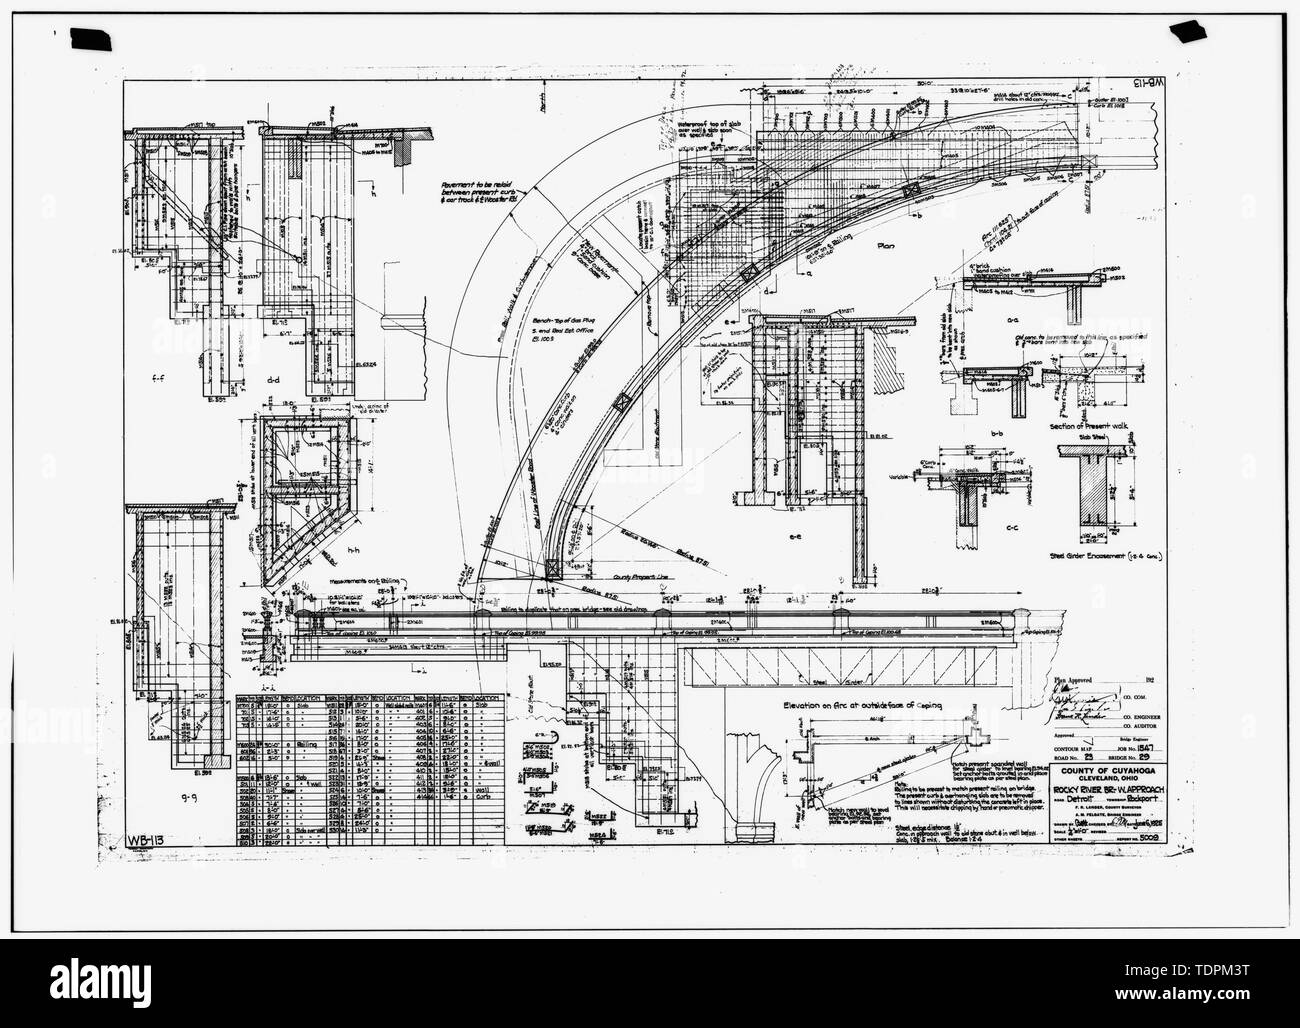 Photocopy on engineering drawing (original in the Office of the Cuyahoga County Engineer)-1925 ROCKY RIVER BRIDGE-WEST APPROACH - Rocky River Bridge, Spanning Beaver Dam River, Rocky River, Cuyahoga County, OH Stock Photo